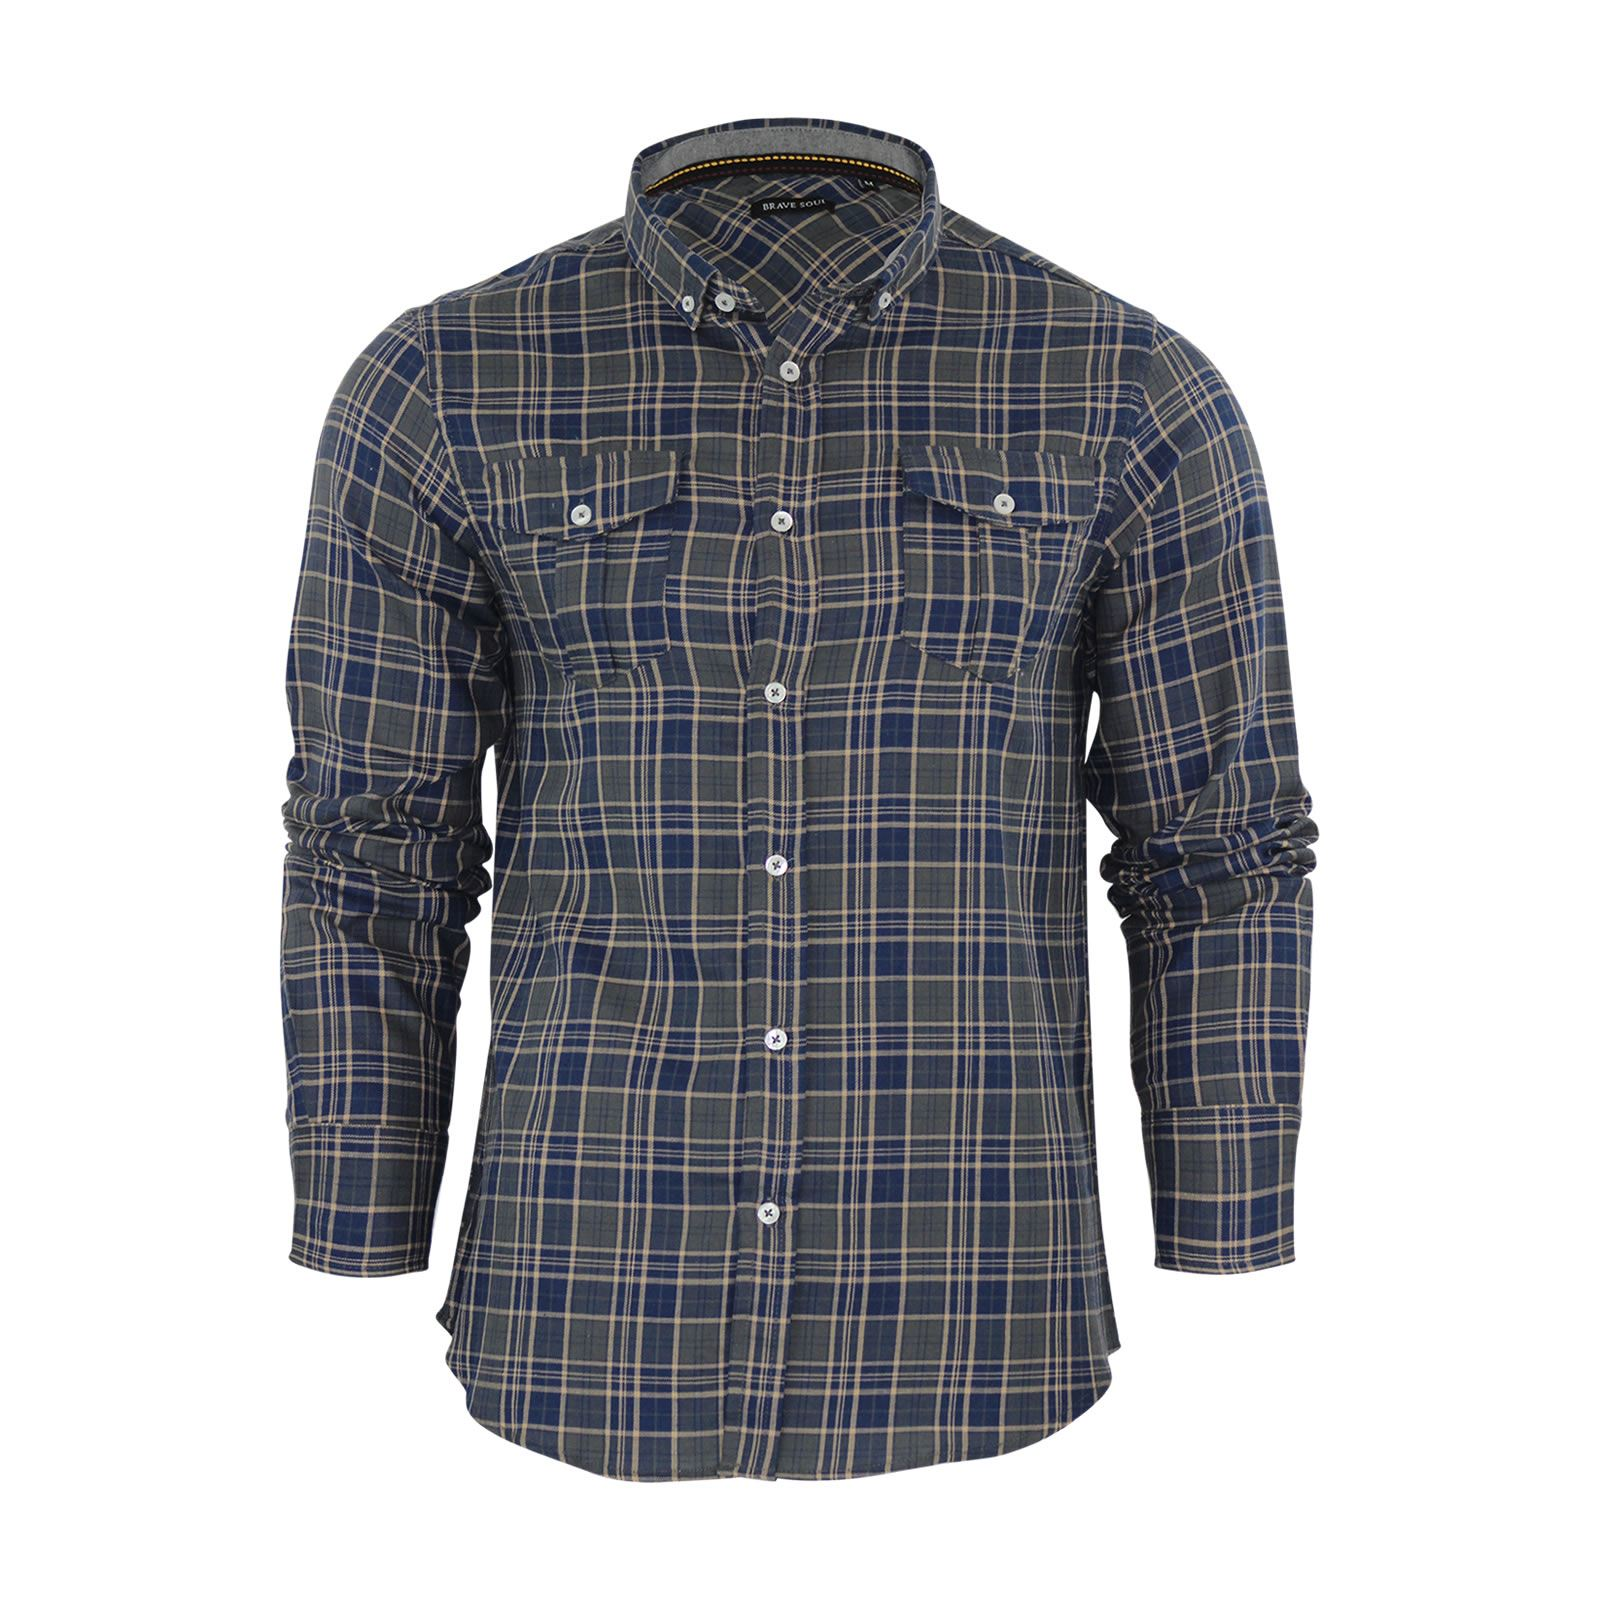 Brave-Soul-Mens-Check-Shirt-Flannel-Brushed-Cotton-Long-Sleeve-Casual-Top thumbnail 67